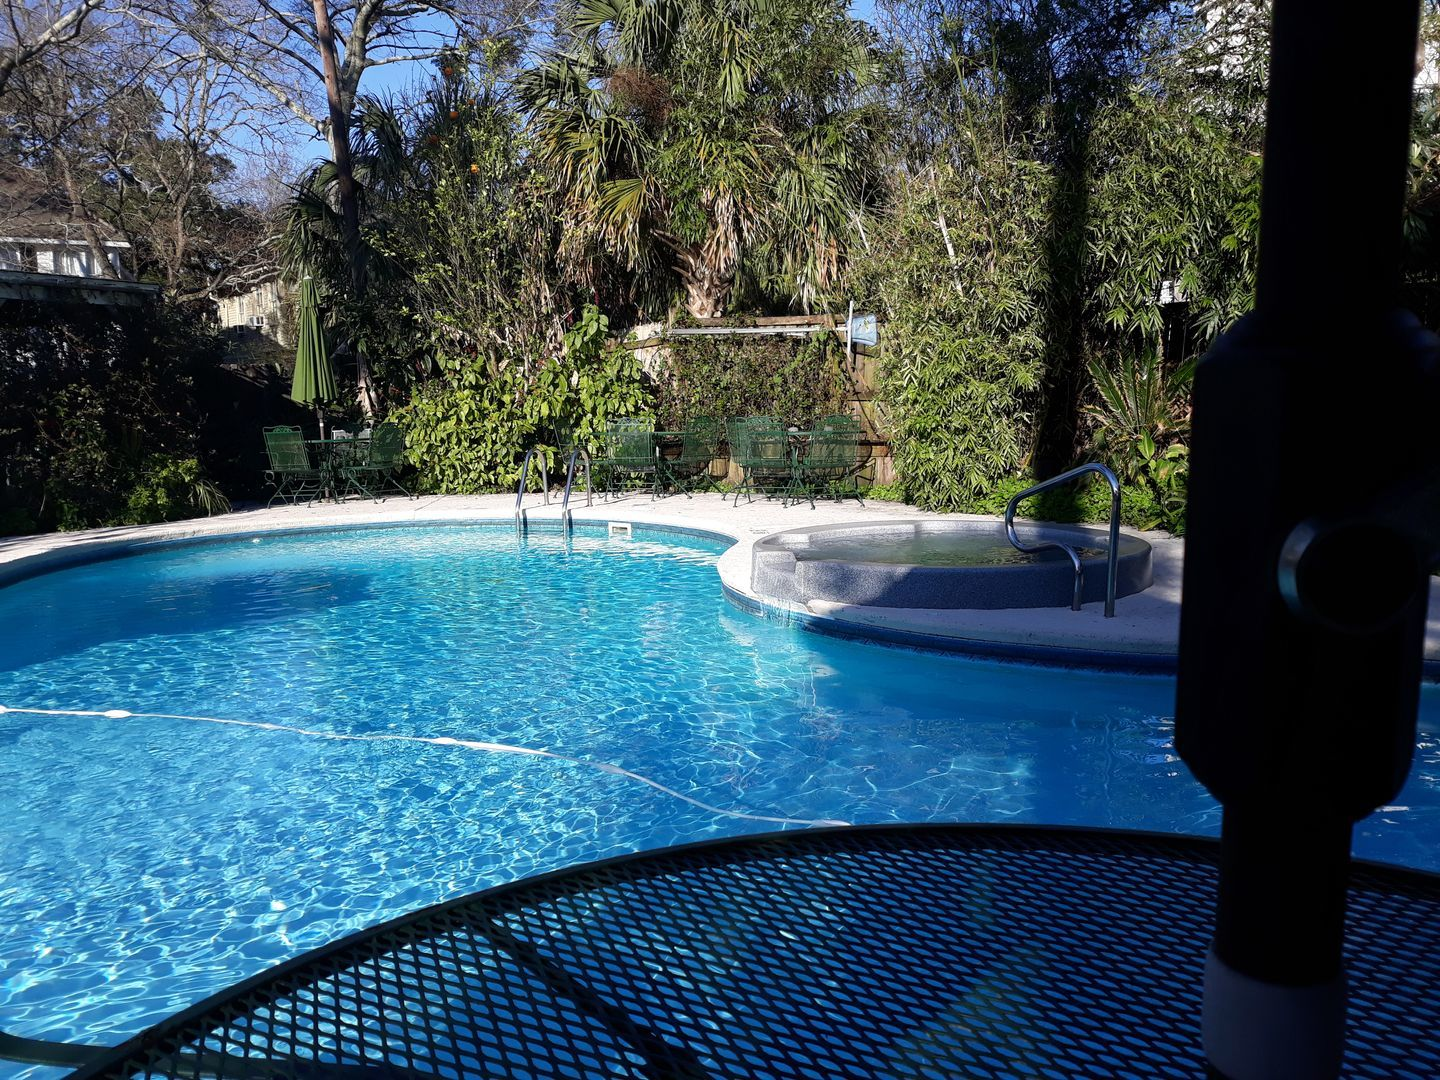 A person in a pool of water at Berney Fly Bed and Breakfast.